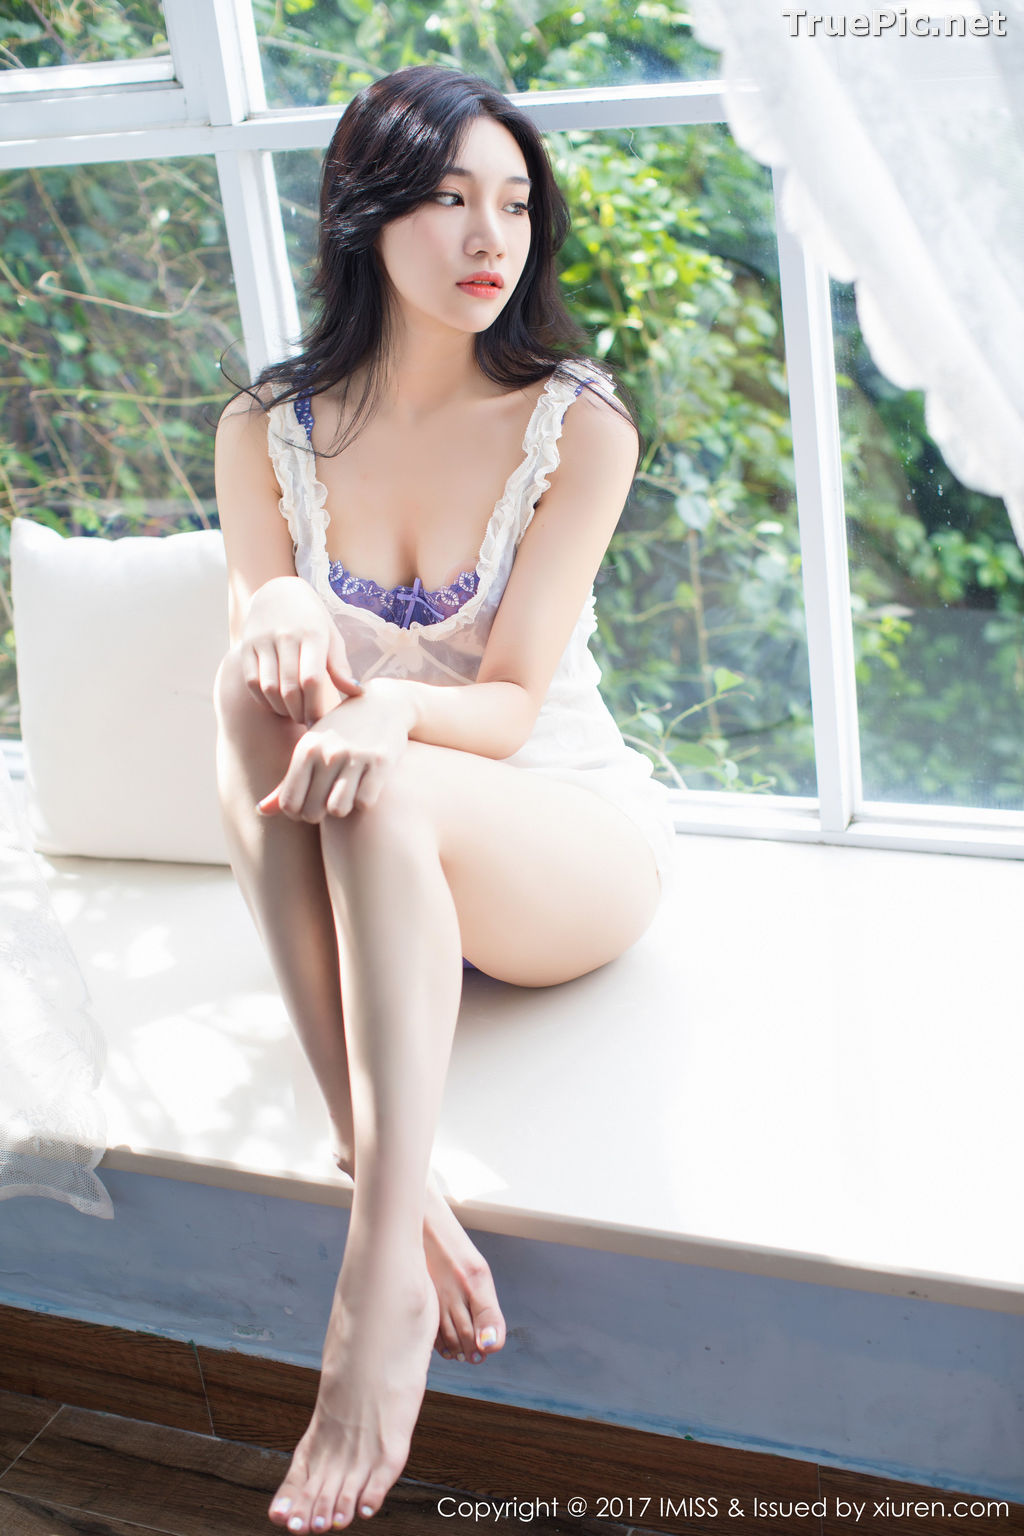 Image IMISS Vol.187 - Chinese Model Xiao Hu Li (小狐狸Sica) With Stockings Beautiful Legs - TruePic.net - Picture-2